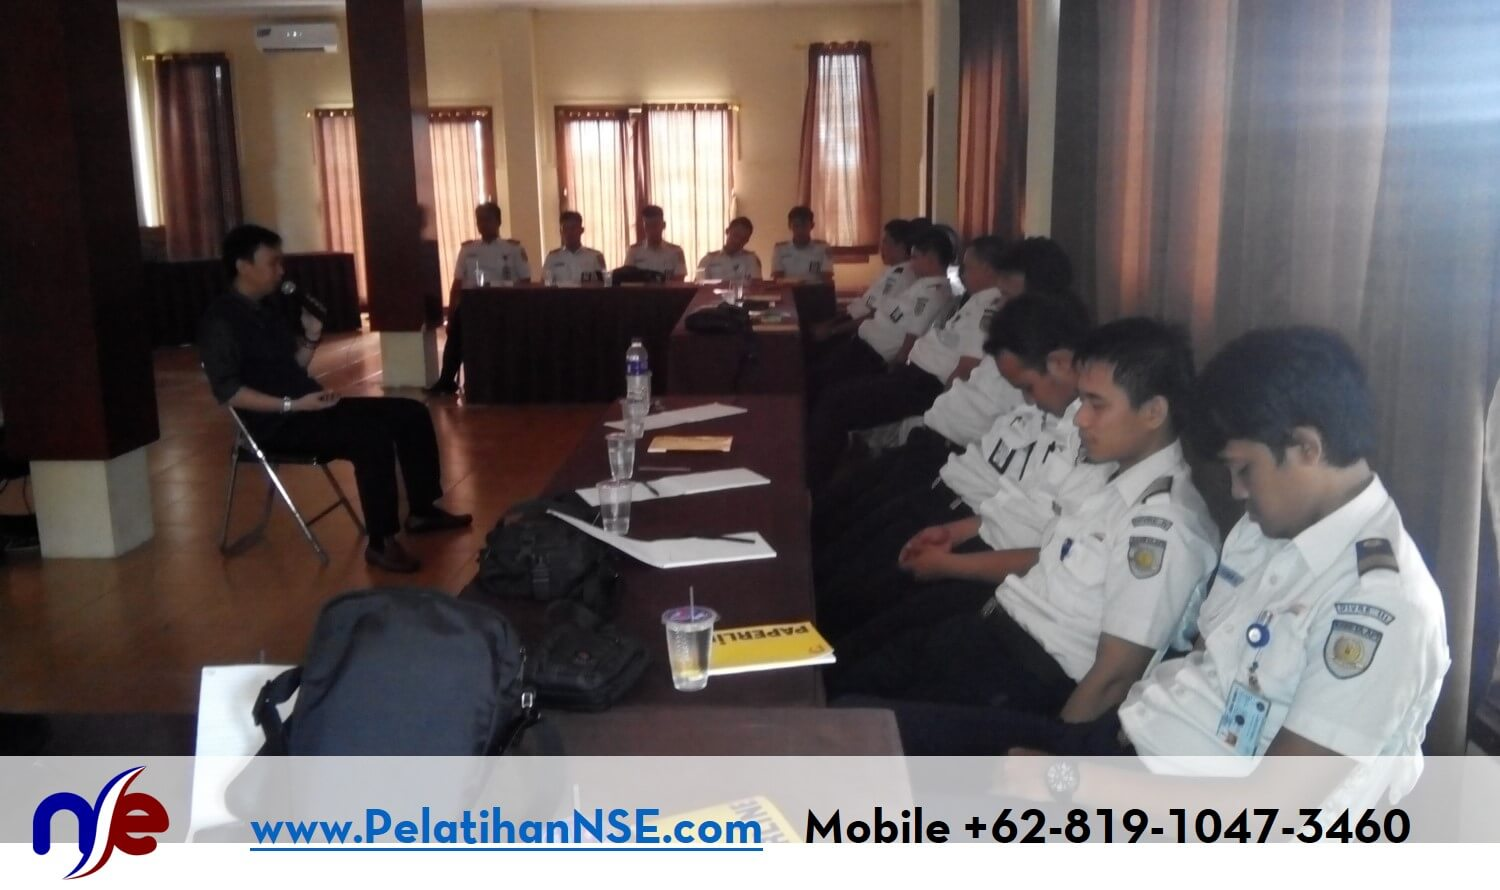 NSE Basic Self Empowerment KAI 16-17 September 2016 - Speedy Relaxation Technique sambil Duduk